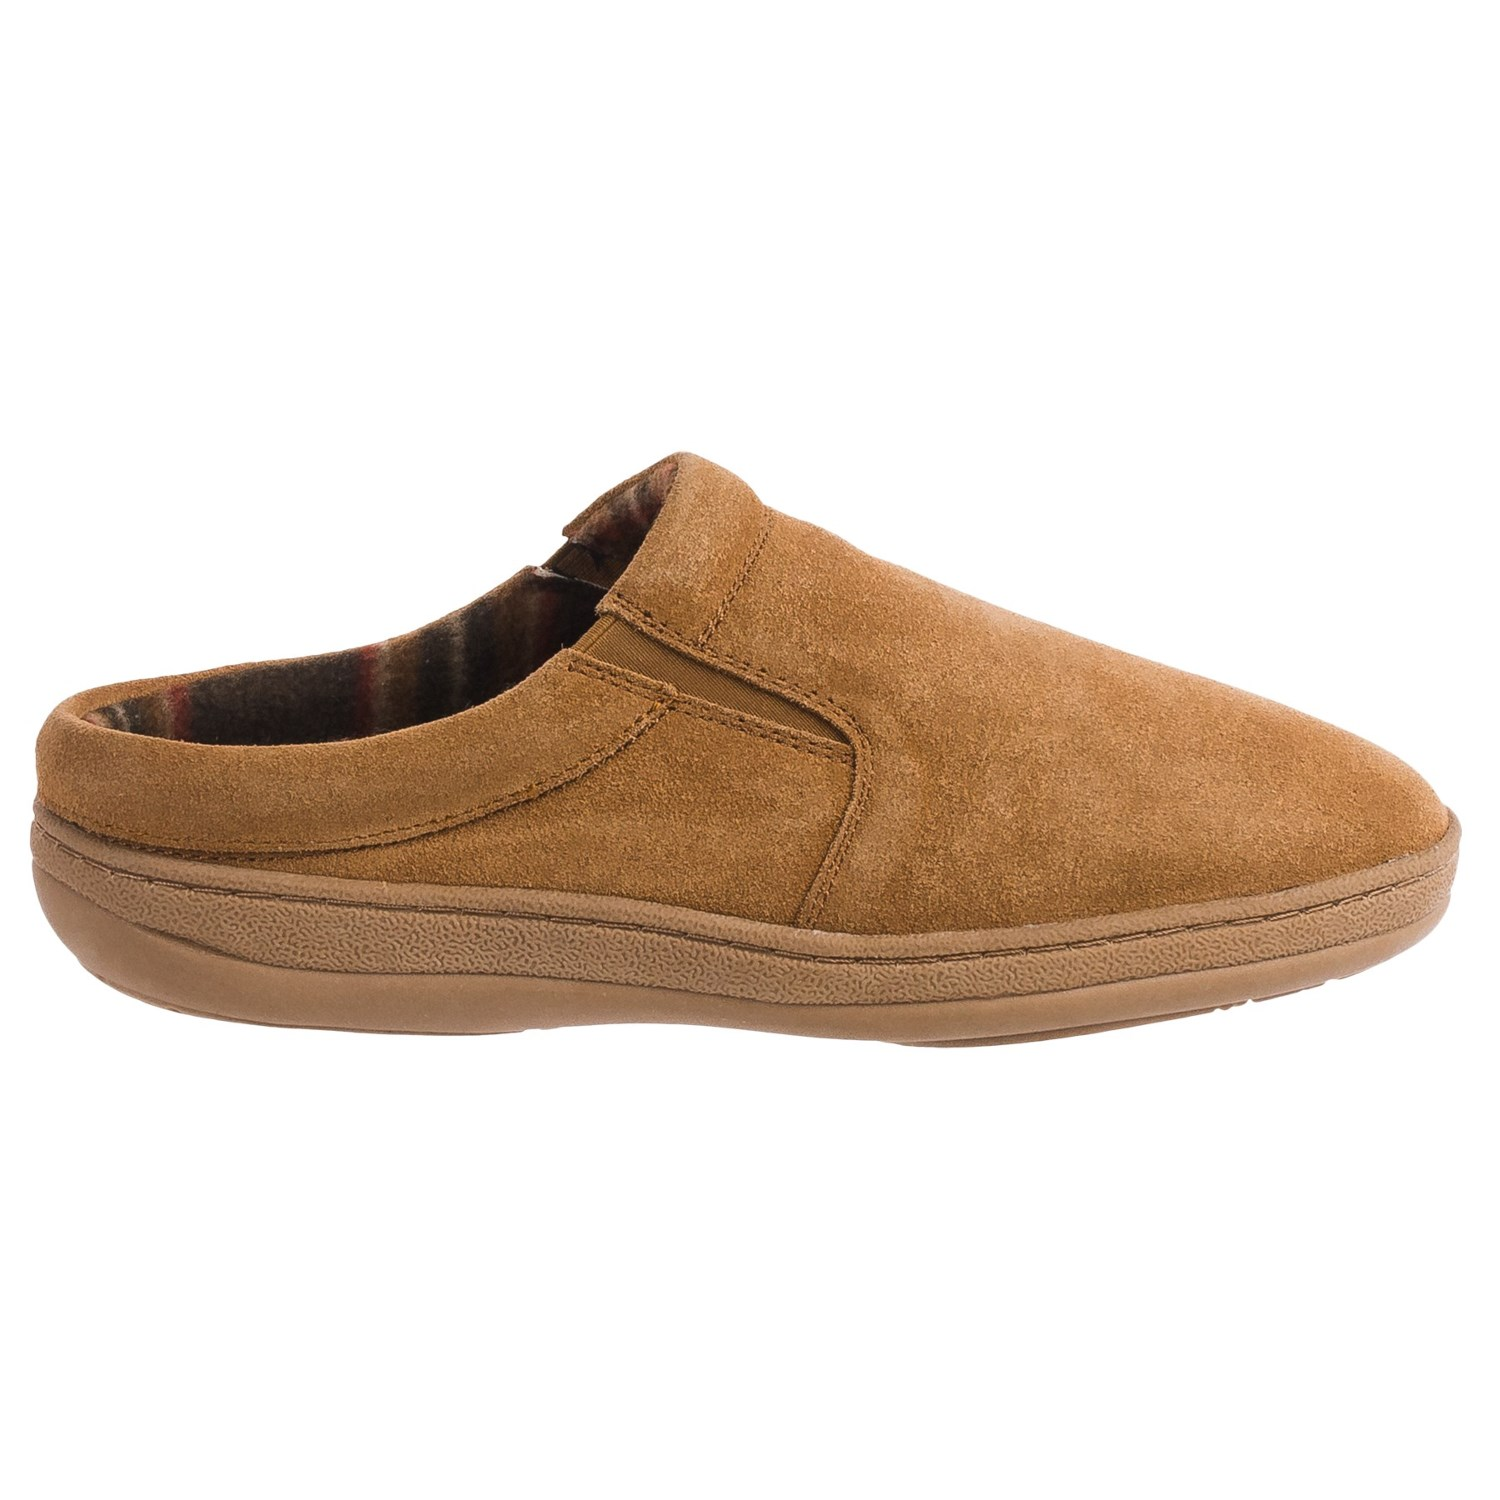 Clarks Fleece Lined Suede Slippers For Men Save 78